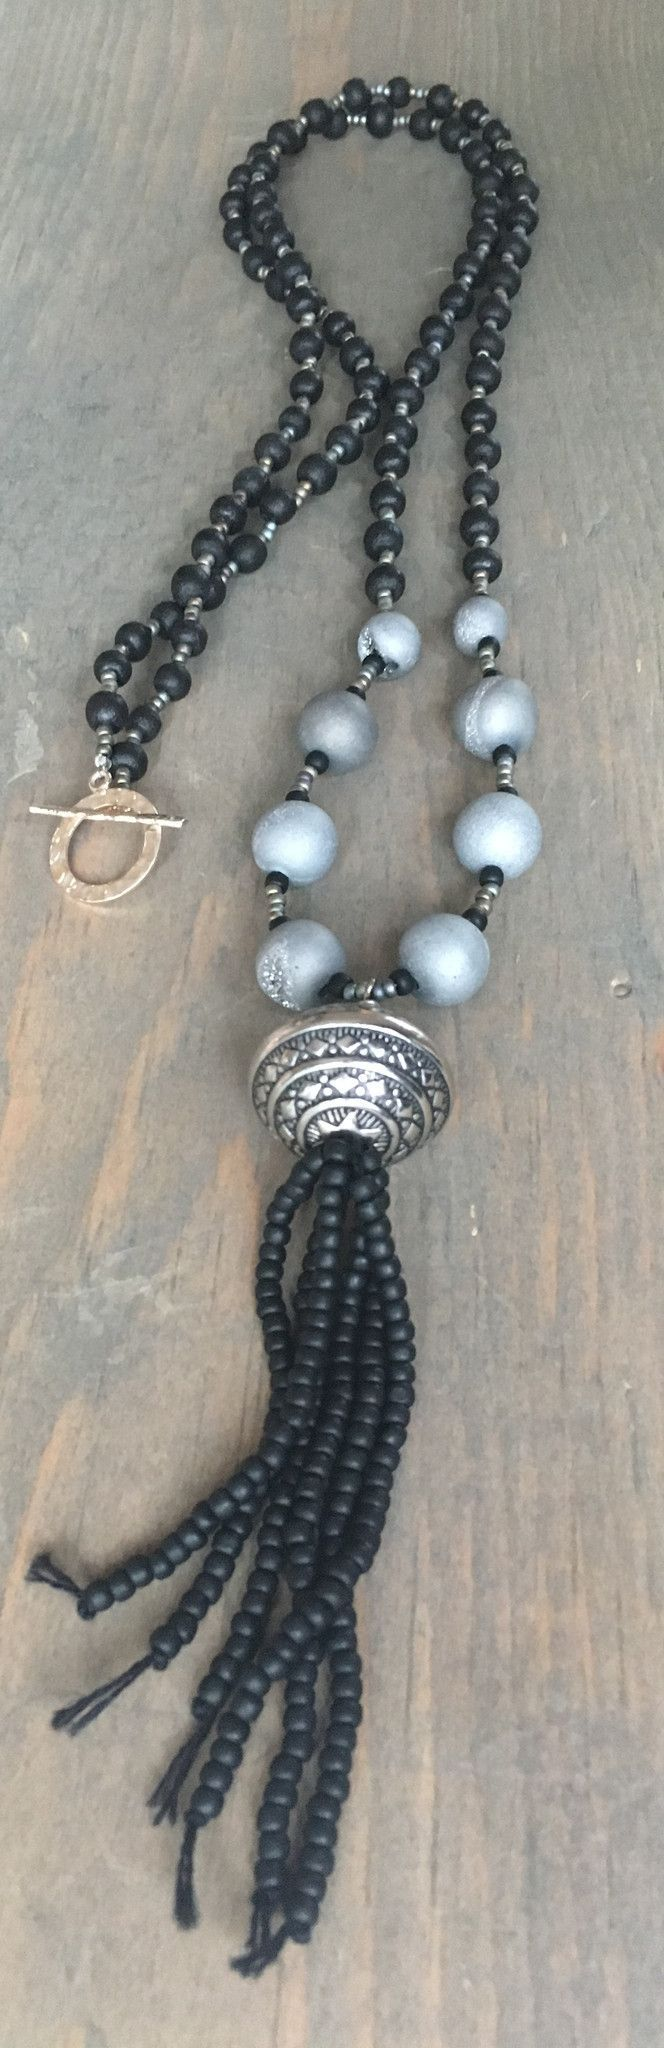 Beaded Necklace with toggle clasp and beaded tassel with black natural wood black beads and grey druzy agate beads